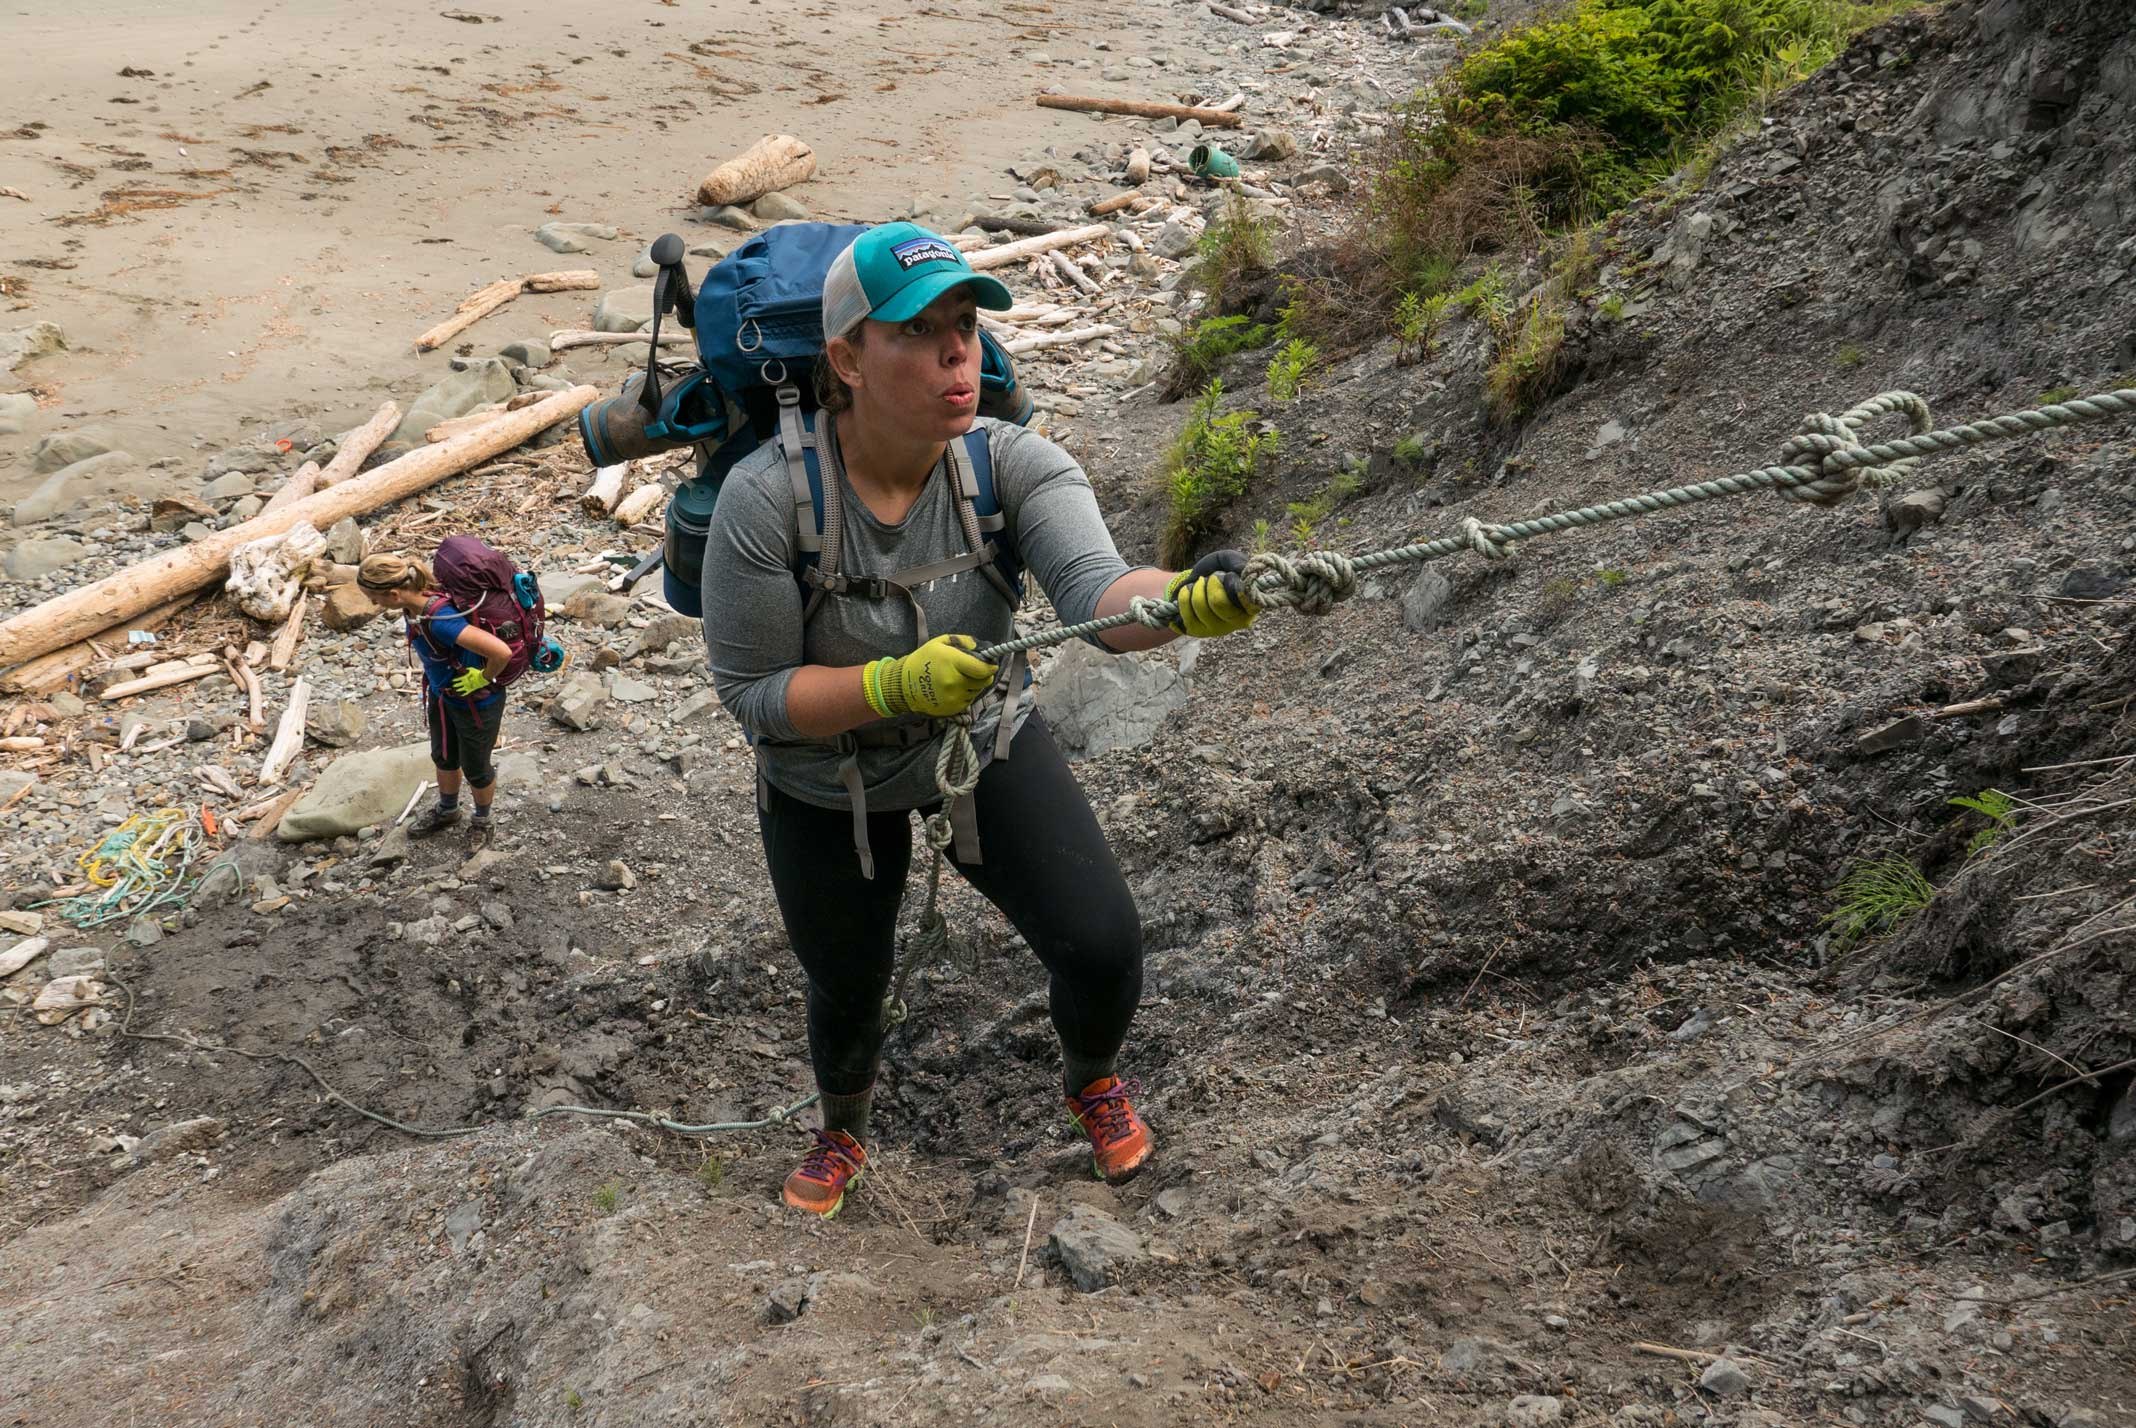 Using ropes to climb a headland on Wilderness Coast, Olympic National Park